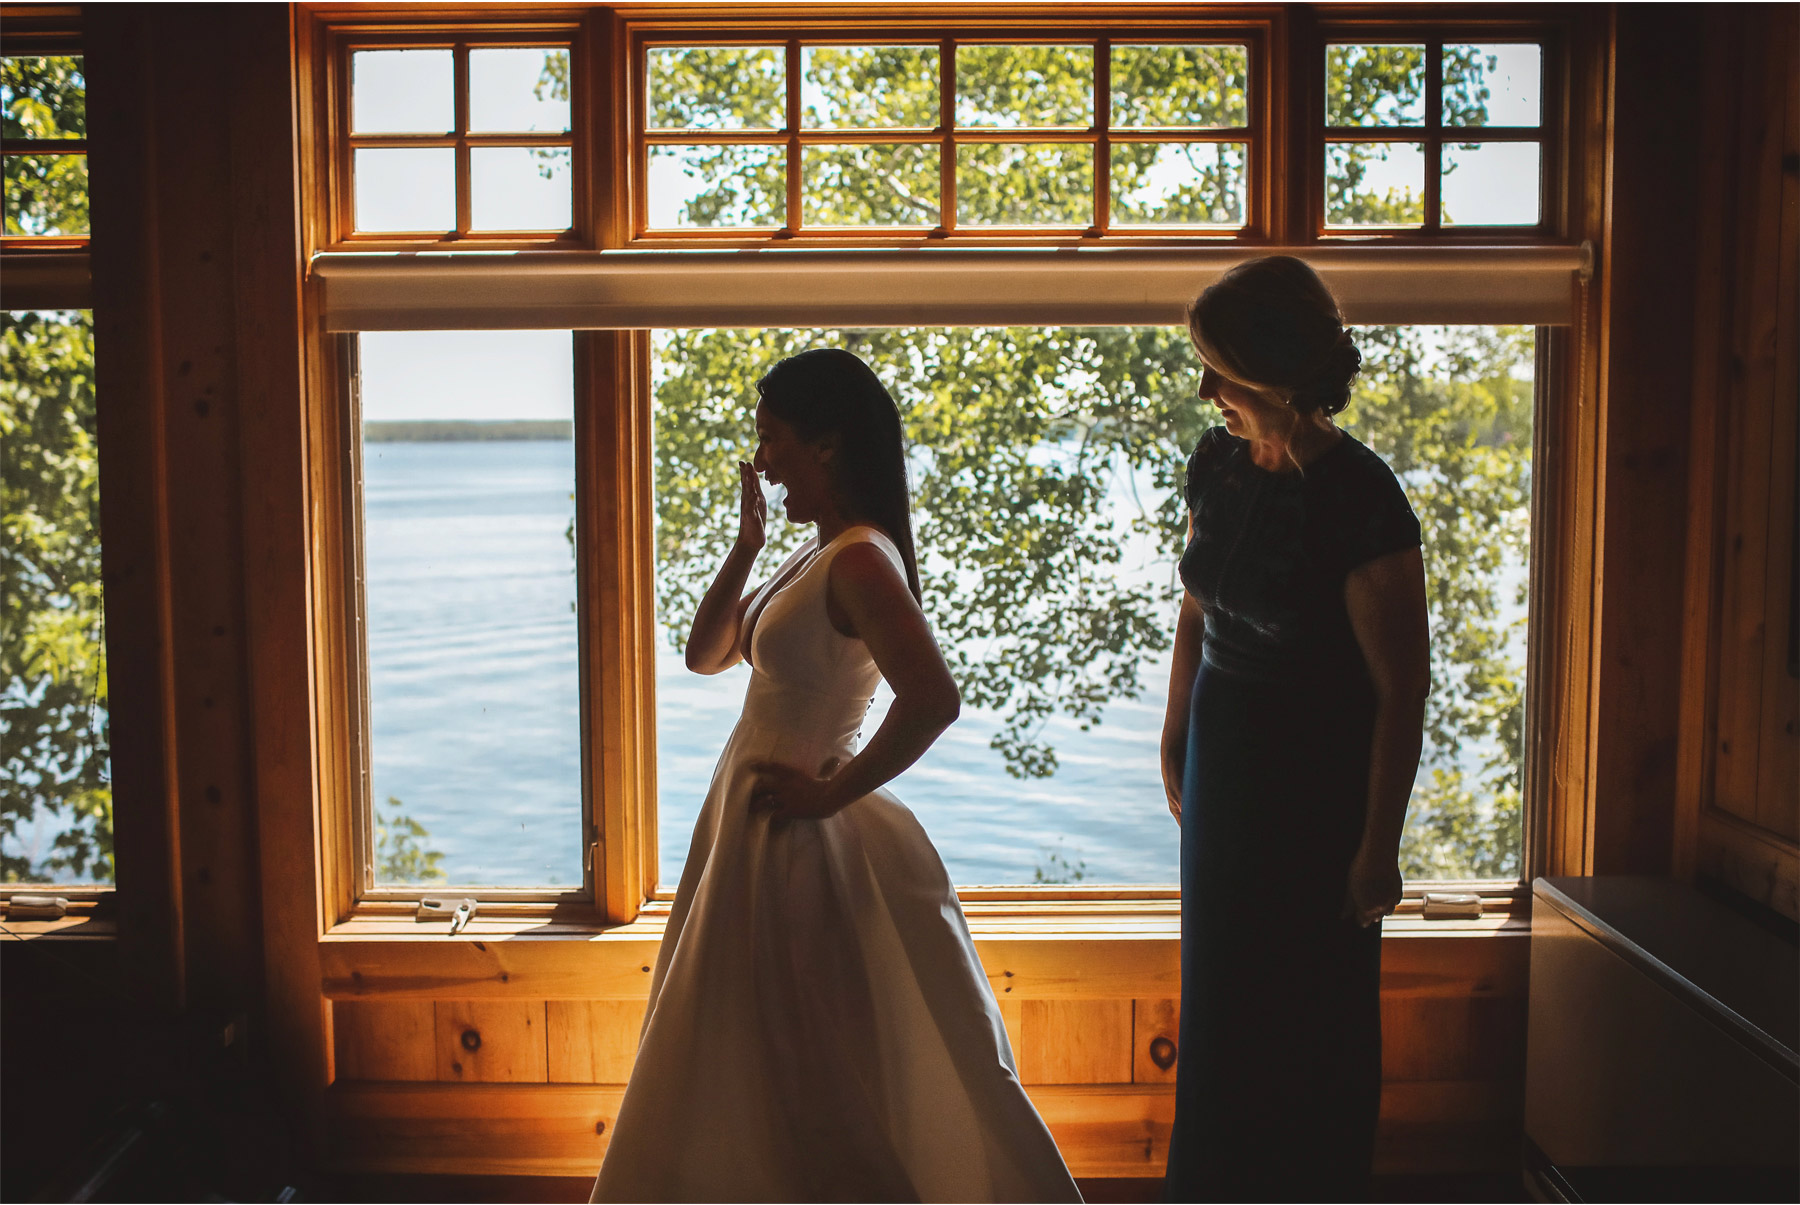 06-Vick-Photography-Wedding-Stouts-Island-Lodge-Wisconsin-Summer-Dress-Mother-Bride-Laughing-MiJa-and-Lucius.jpg